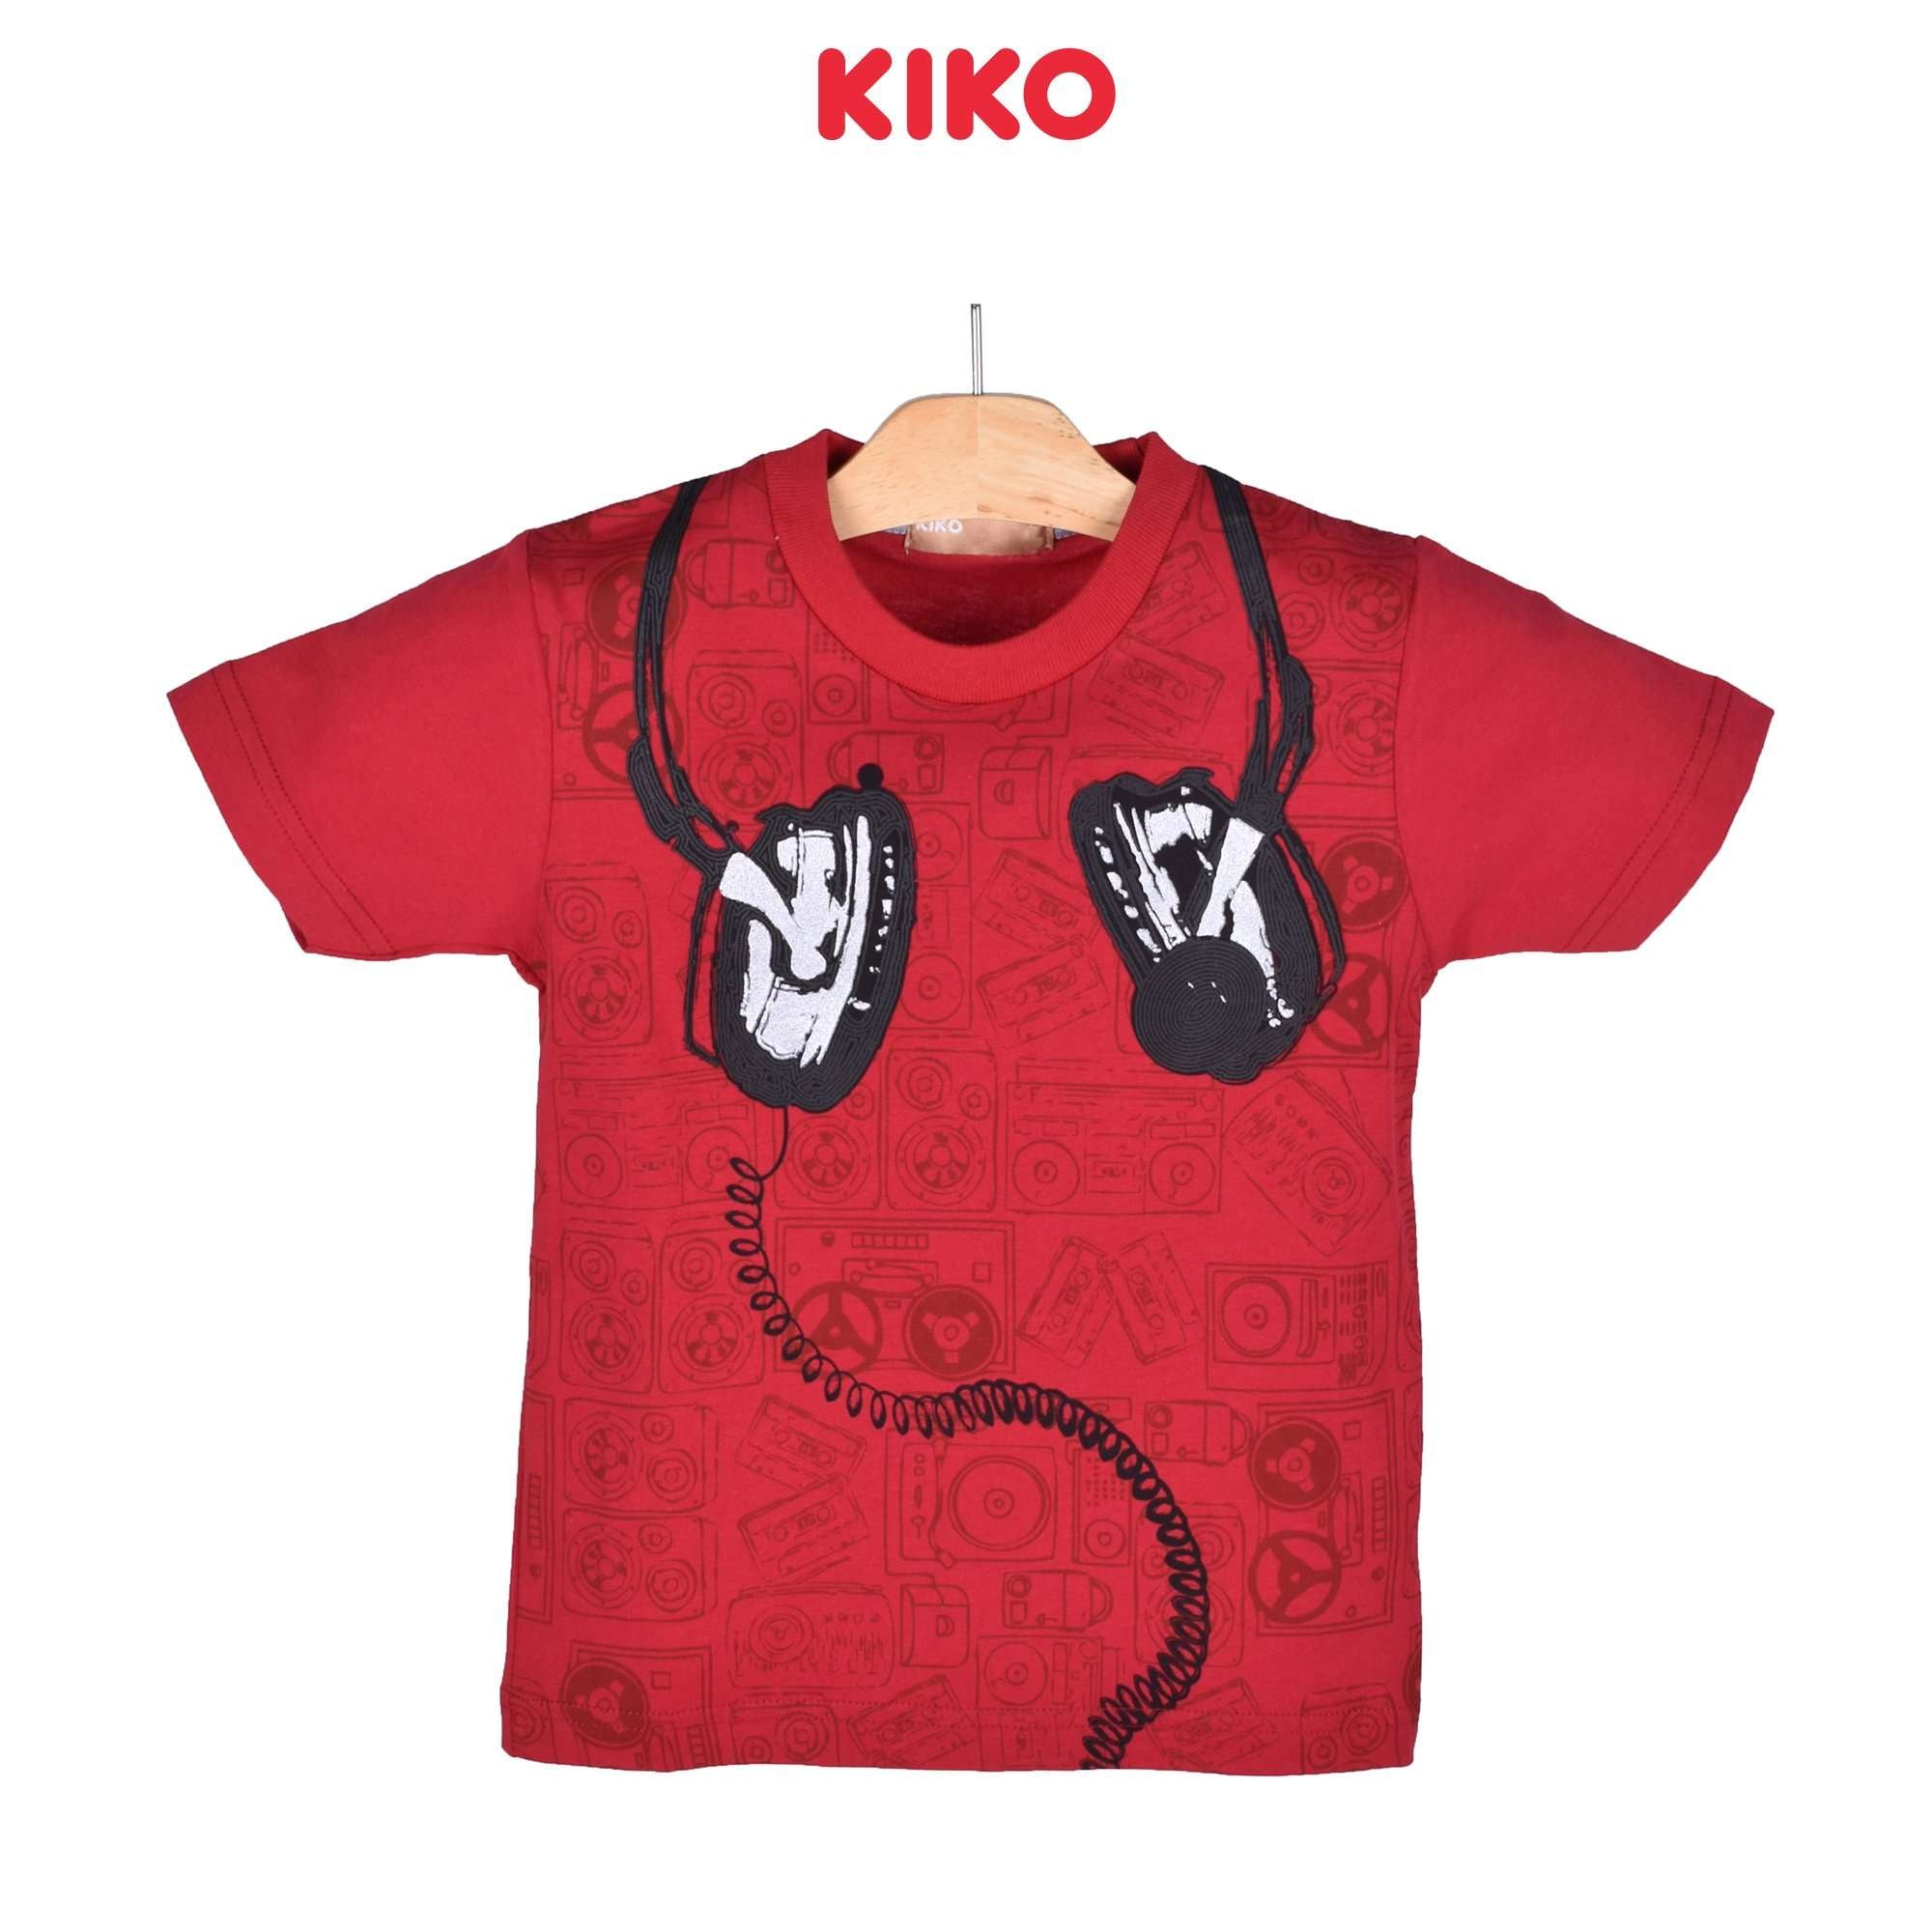 KIKO Boy Short Sleeve Tee 130086-111 : Buy KIKO online at CMG.MY